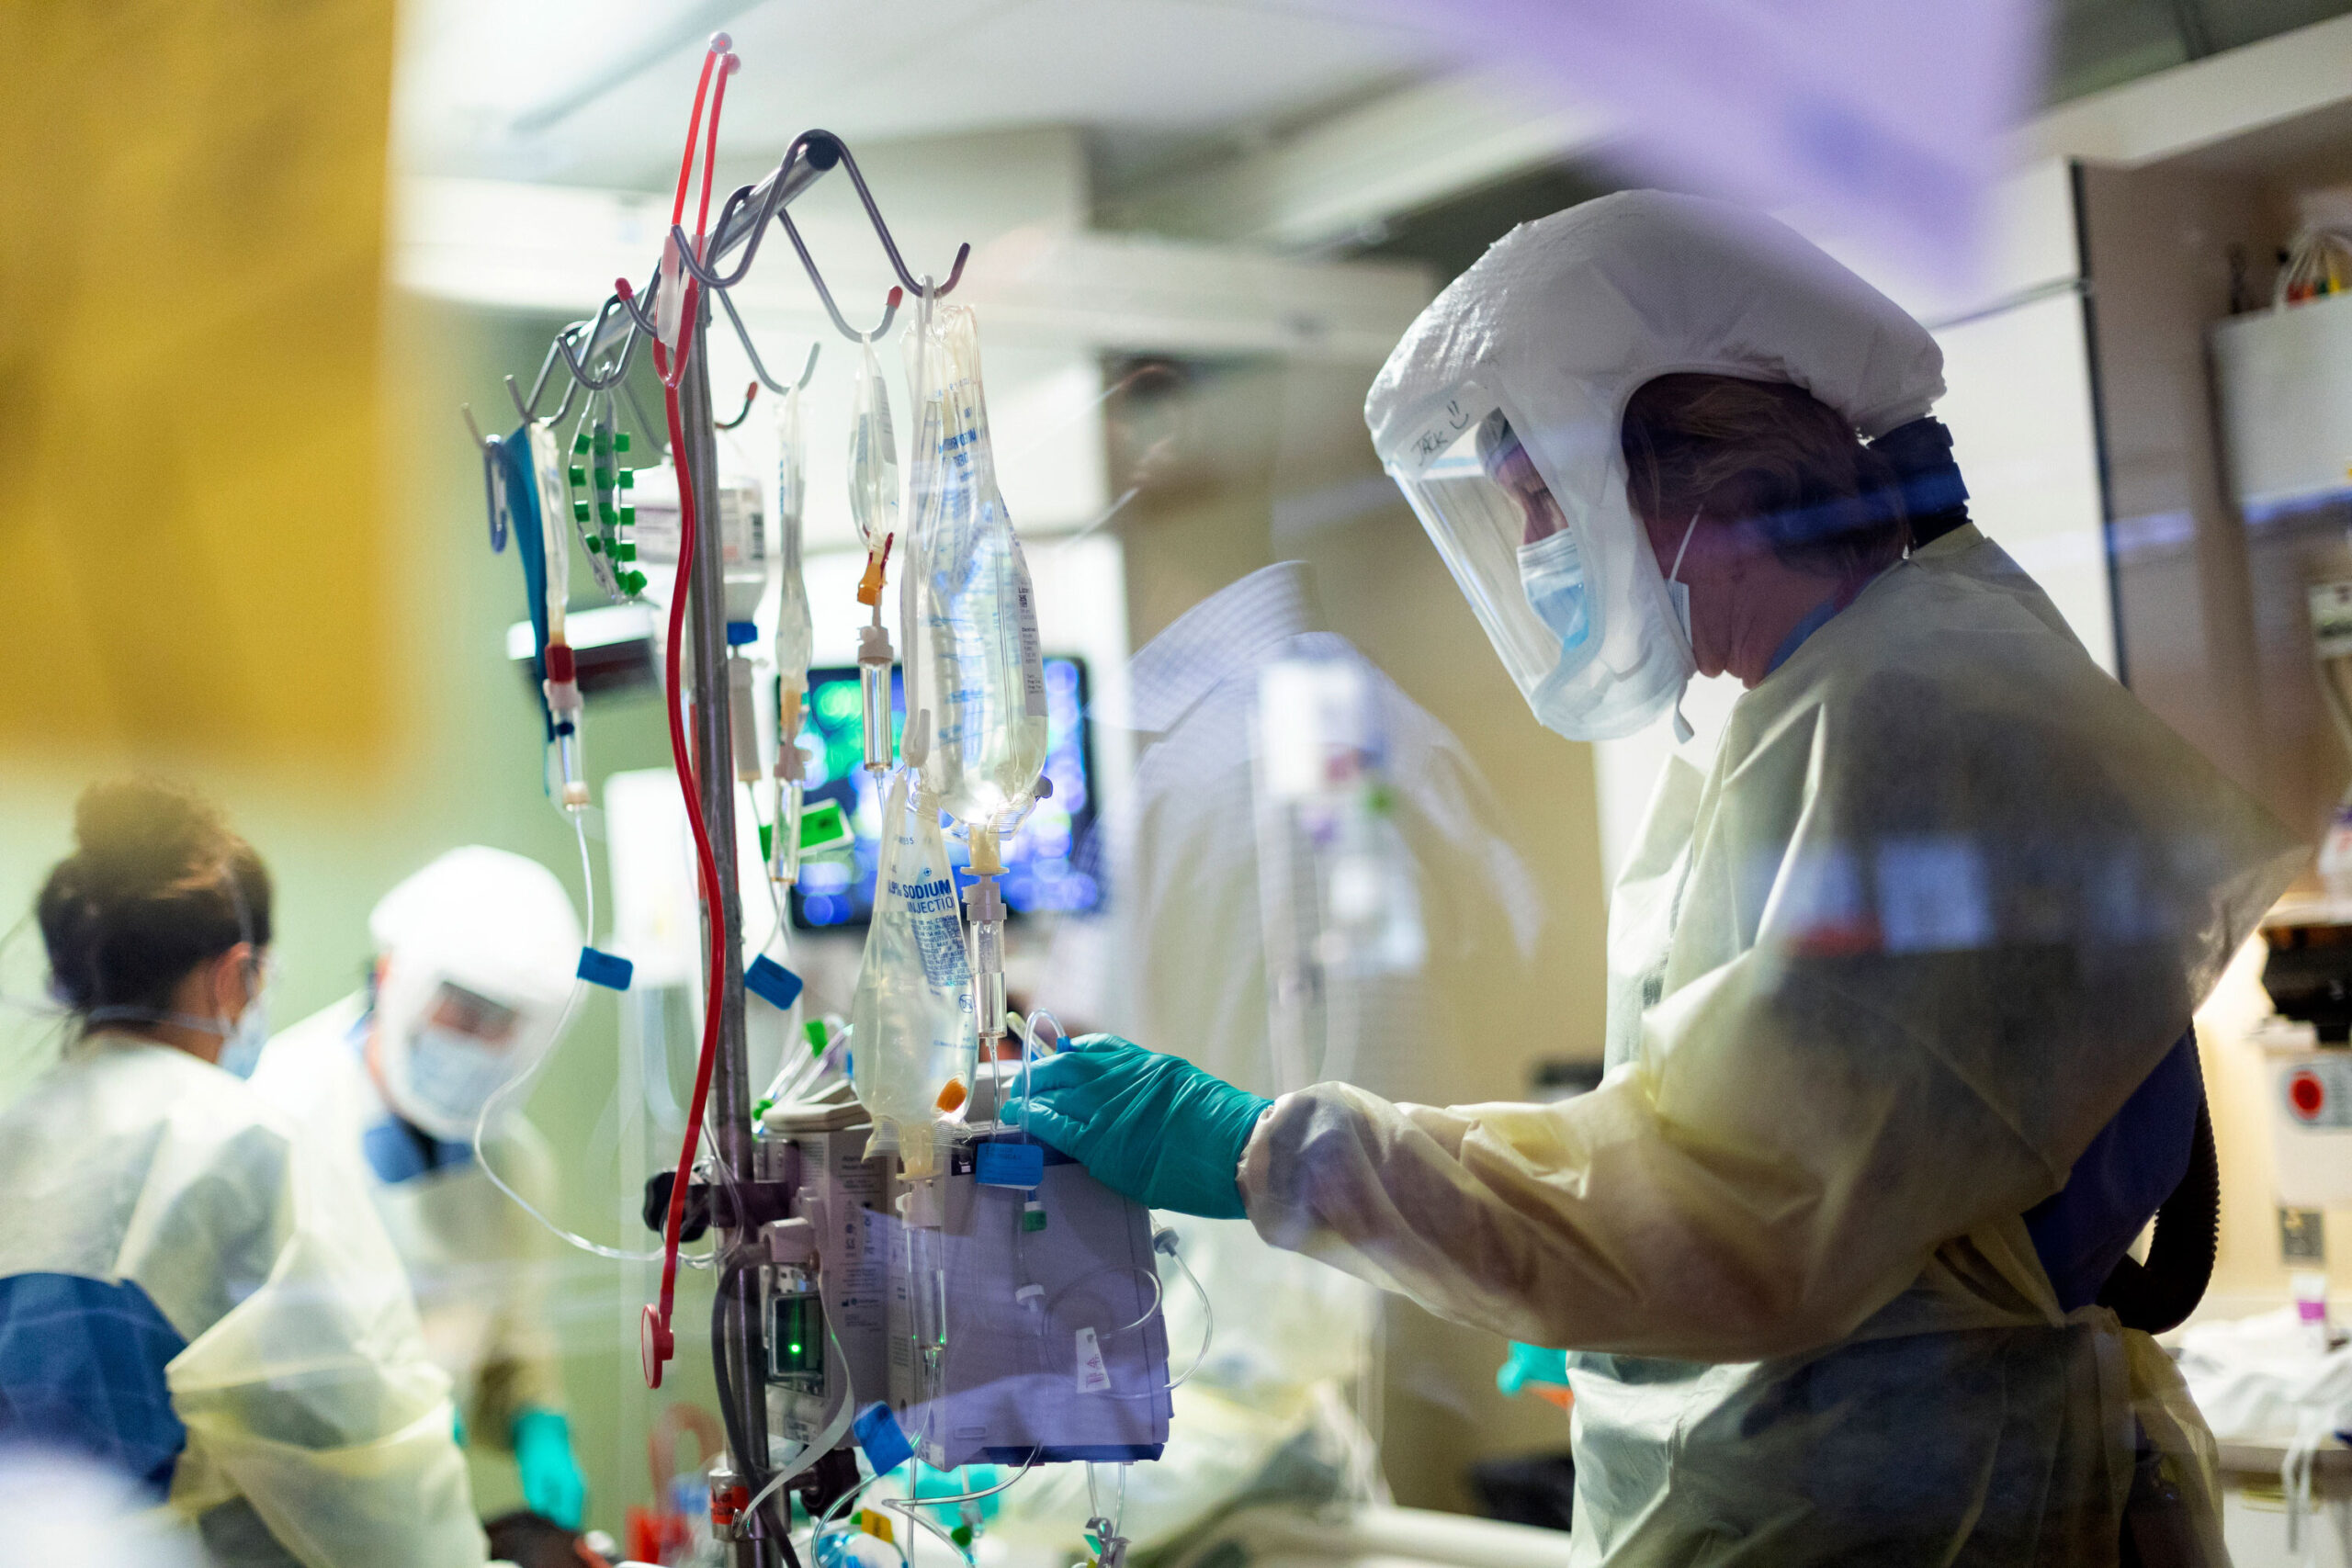 <i>Kyle Green/AP</i><br/>Jack Kingsley R.N. attends to a Covid-19 patient in the Medical Intensive Care Unit at St. Luke's Boise Medical Center in Boise